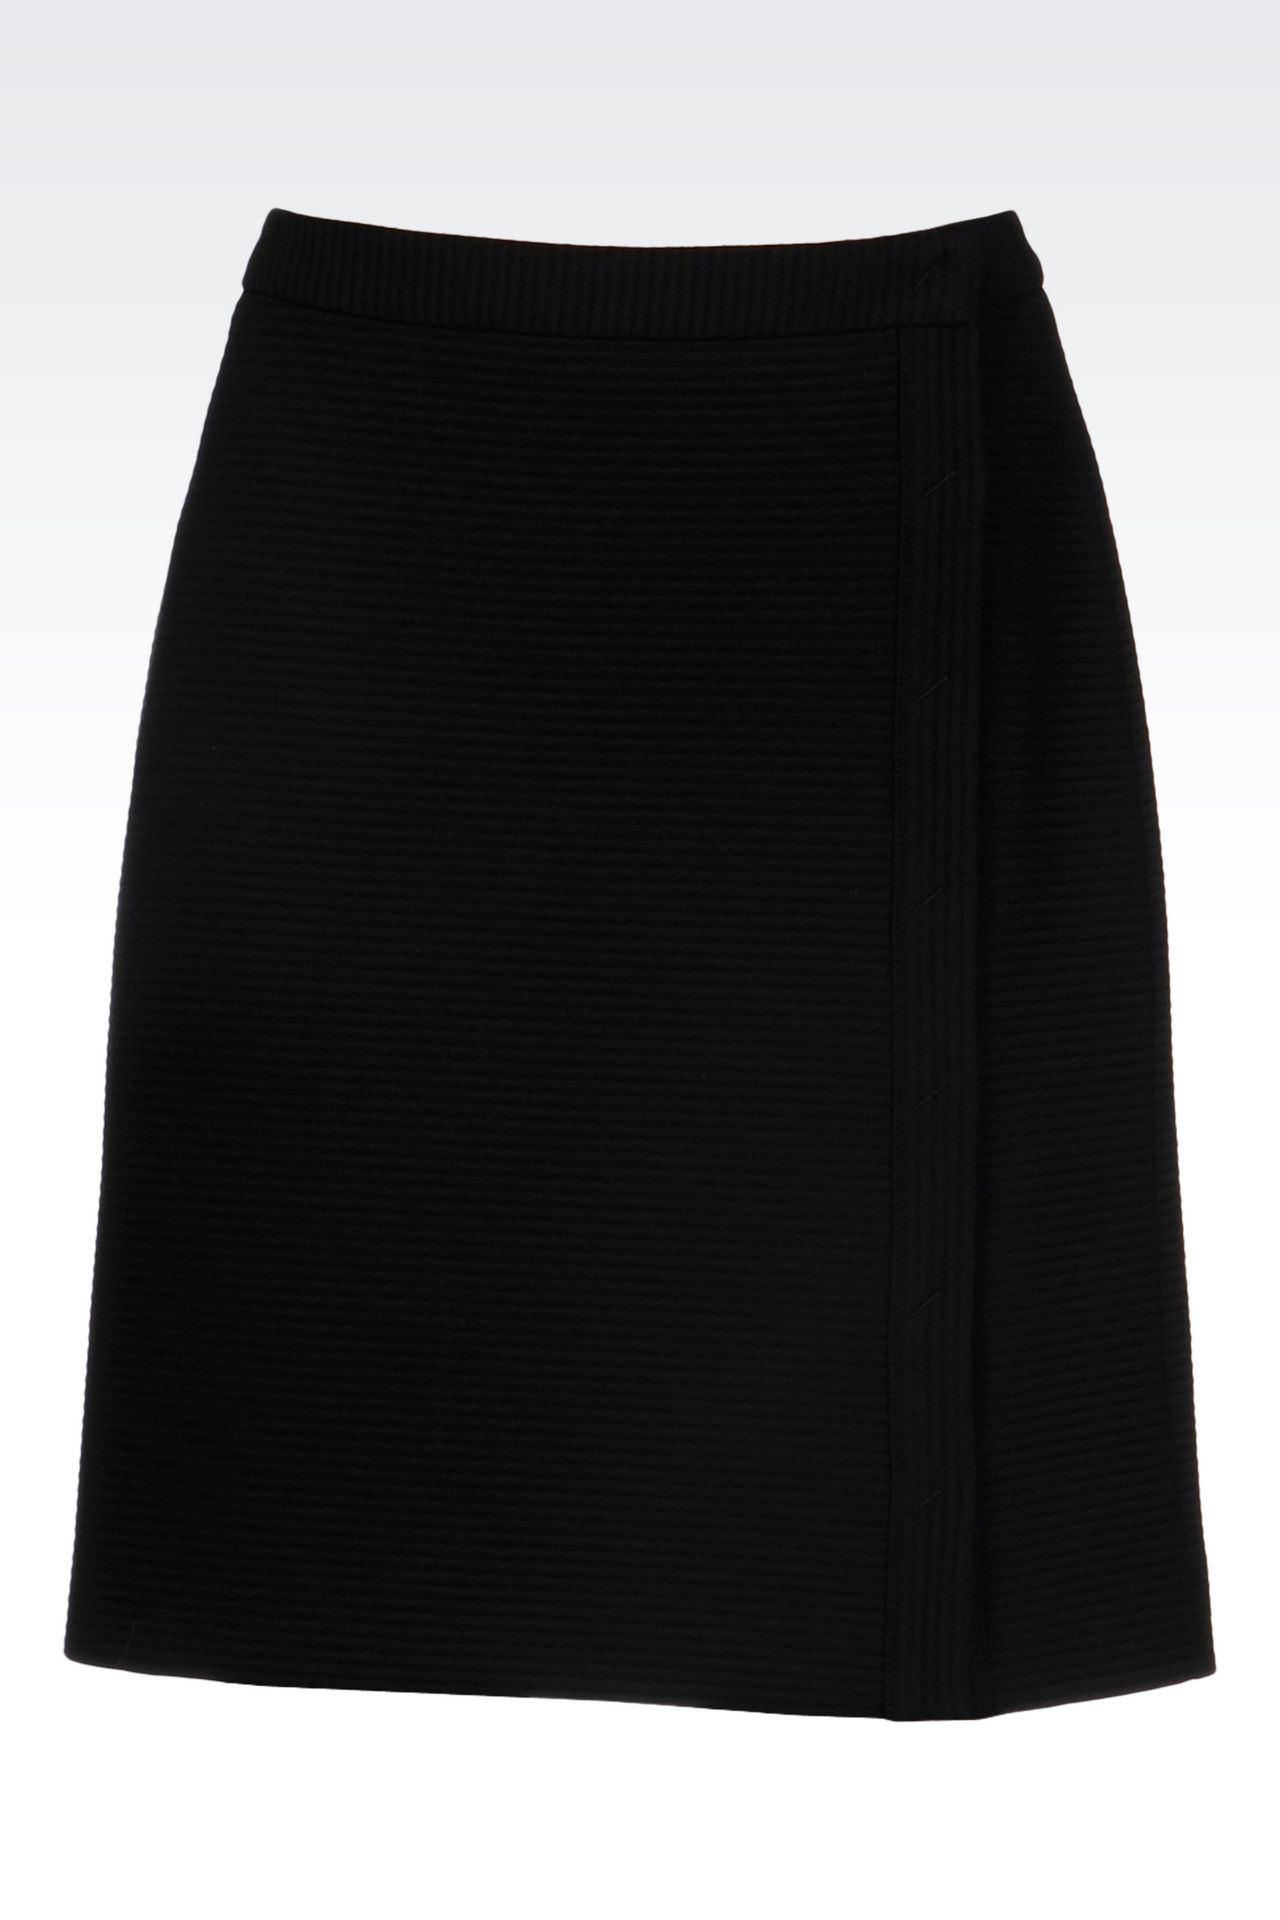 SKIRT IN TECHNICAL VISCOSE WITH SPLIT: Knee length skirts Women by Armani - 0